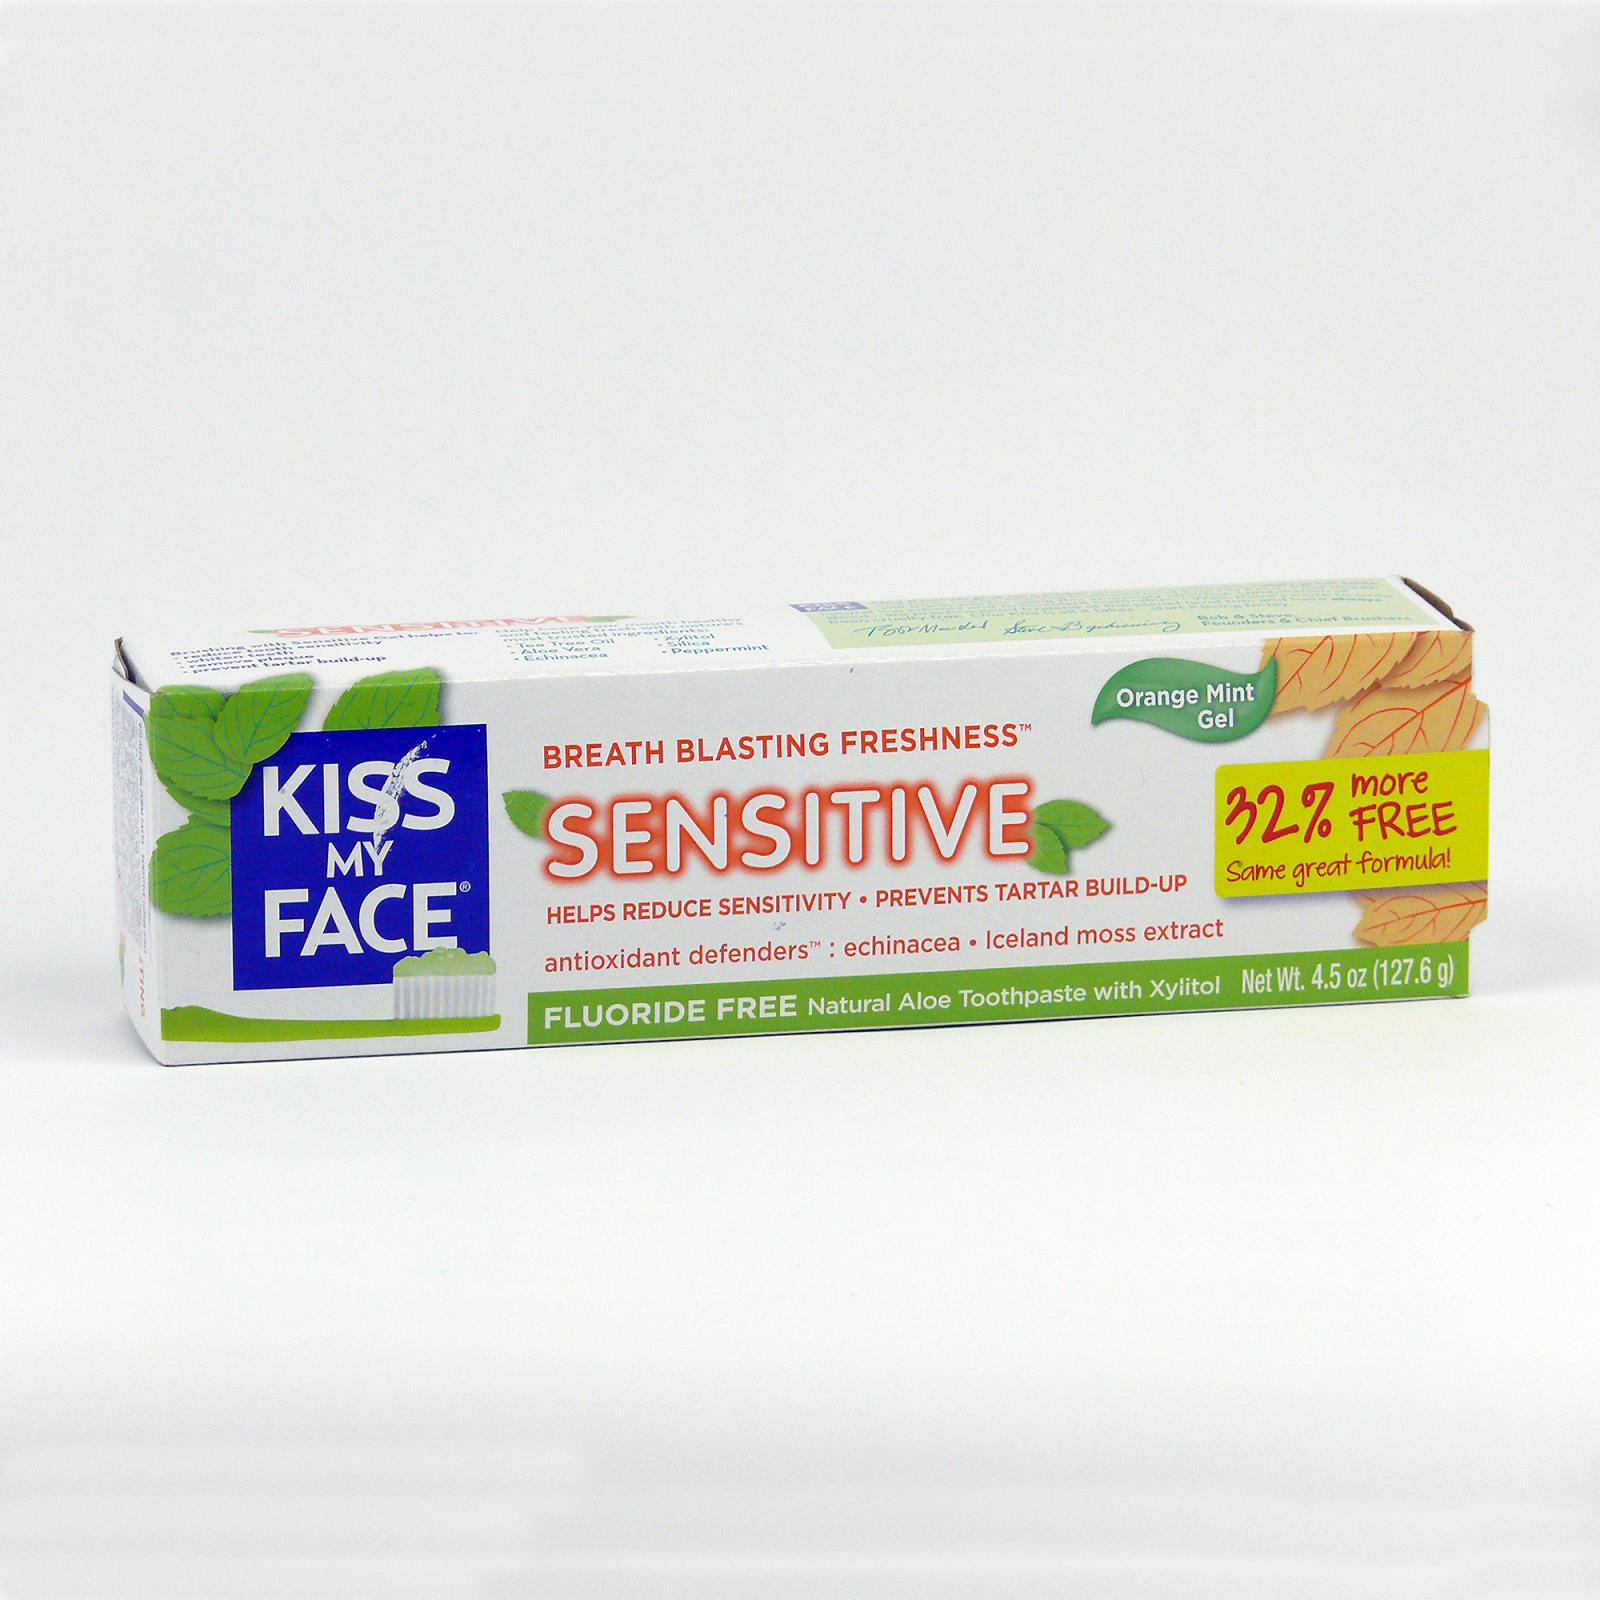 Kiss My Face Corp. Zubní gel Sensitive, bez fluoridu 127,6 g